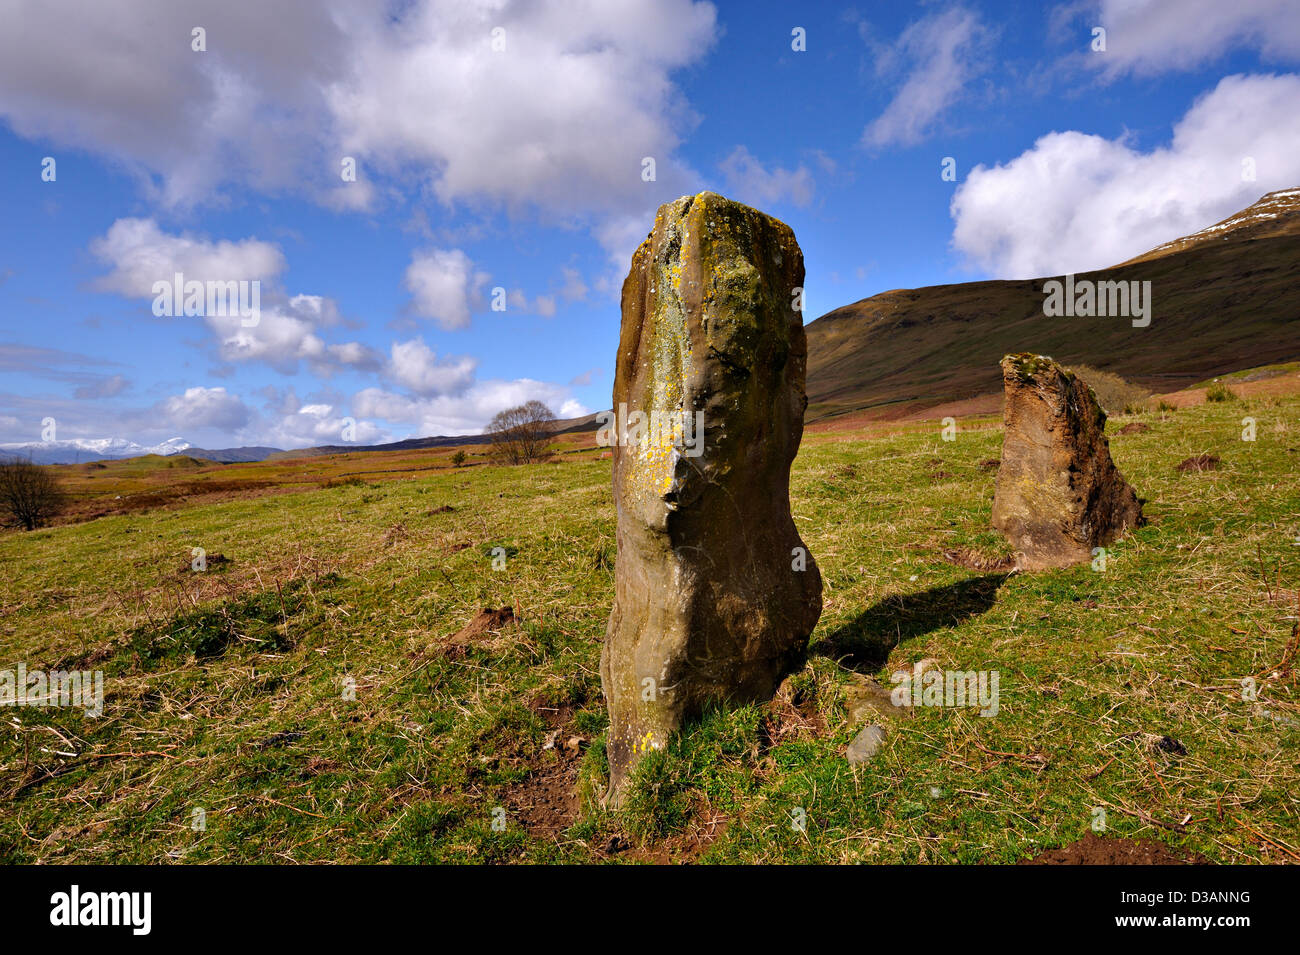 scenic standing stone neolithic stone-age symbol - Stock Image